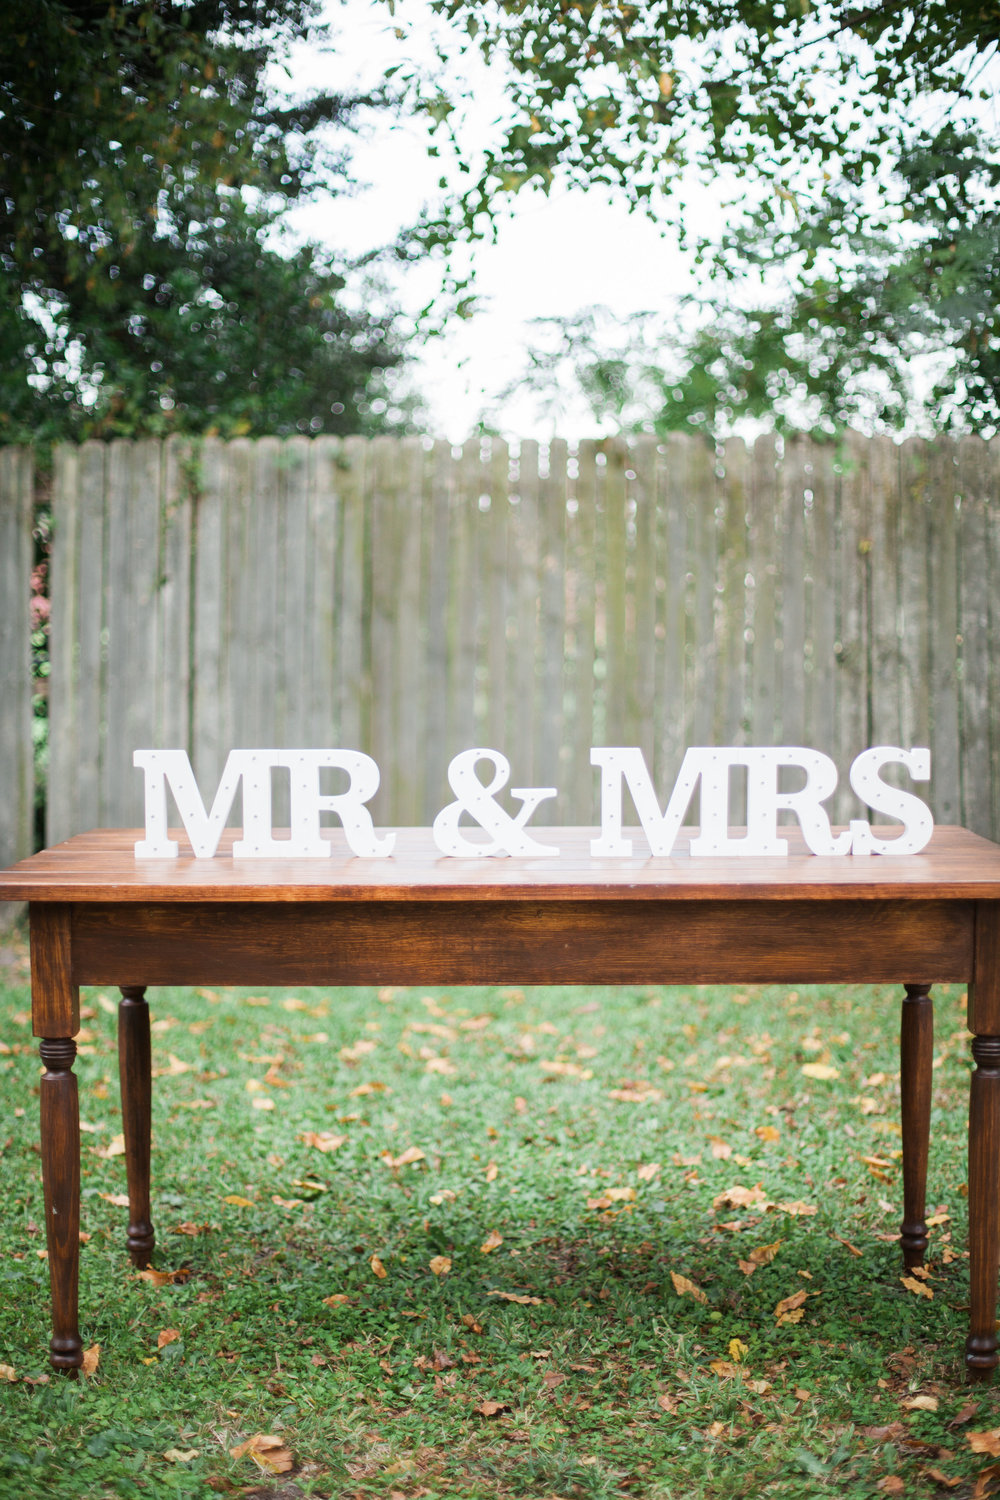 MR & MRS LED Letters